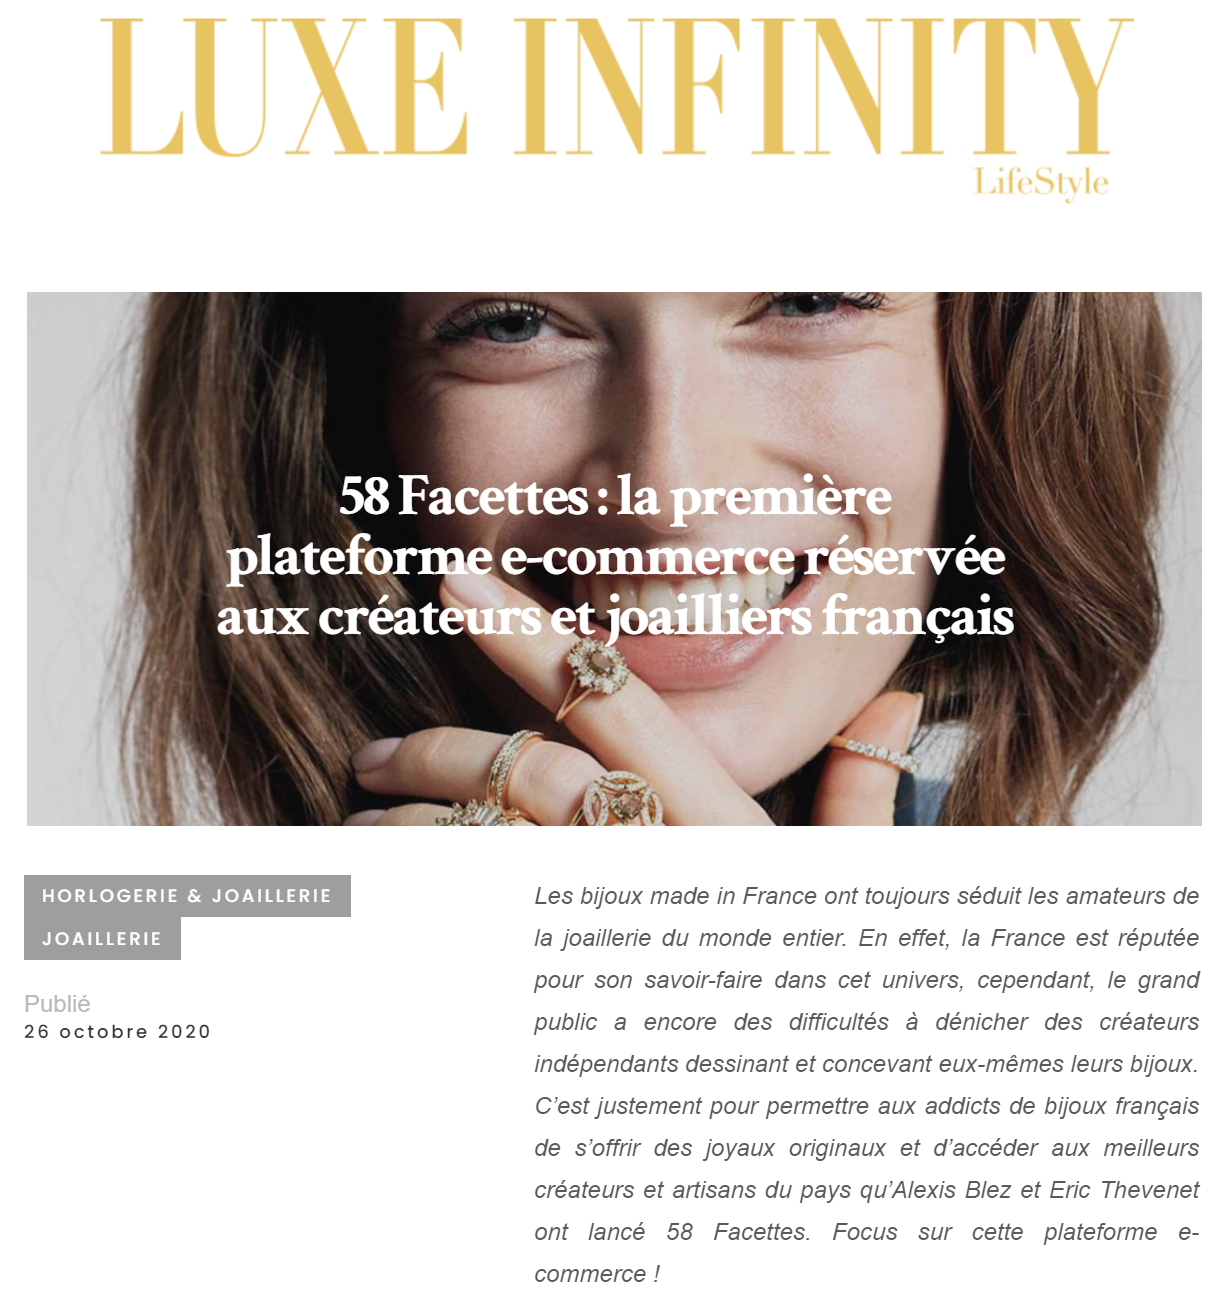 Luxe Infinity LifeStyle - 58 Facettes